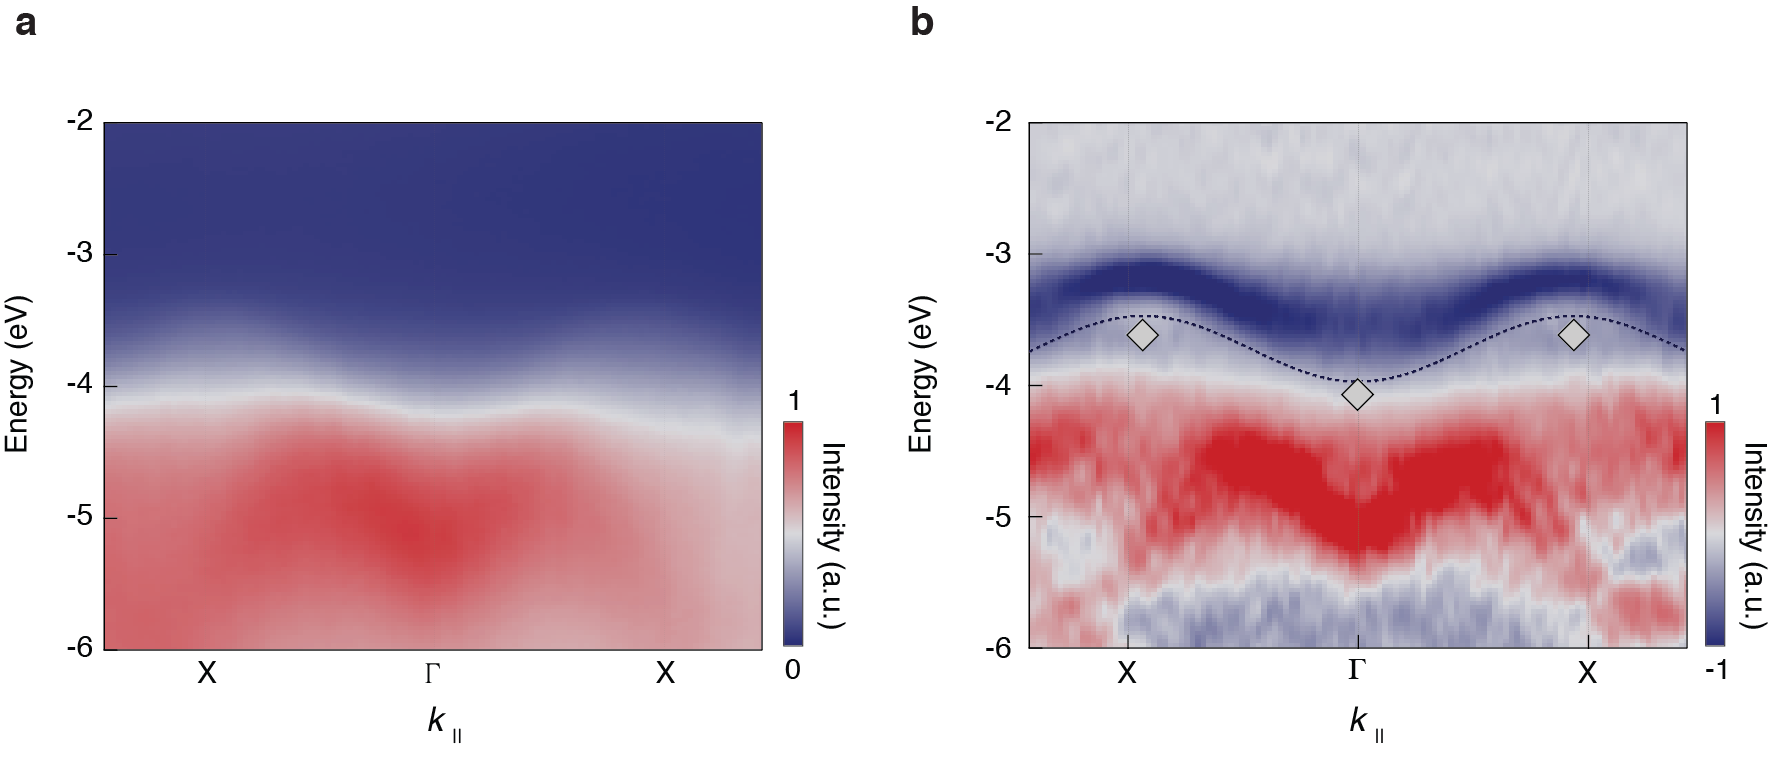 ARPES energy vs. momentum intensity map for a crystal doped with an excess electron density